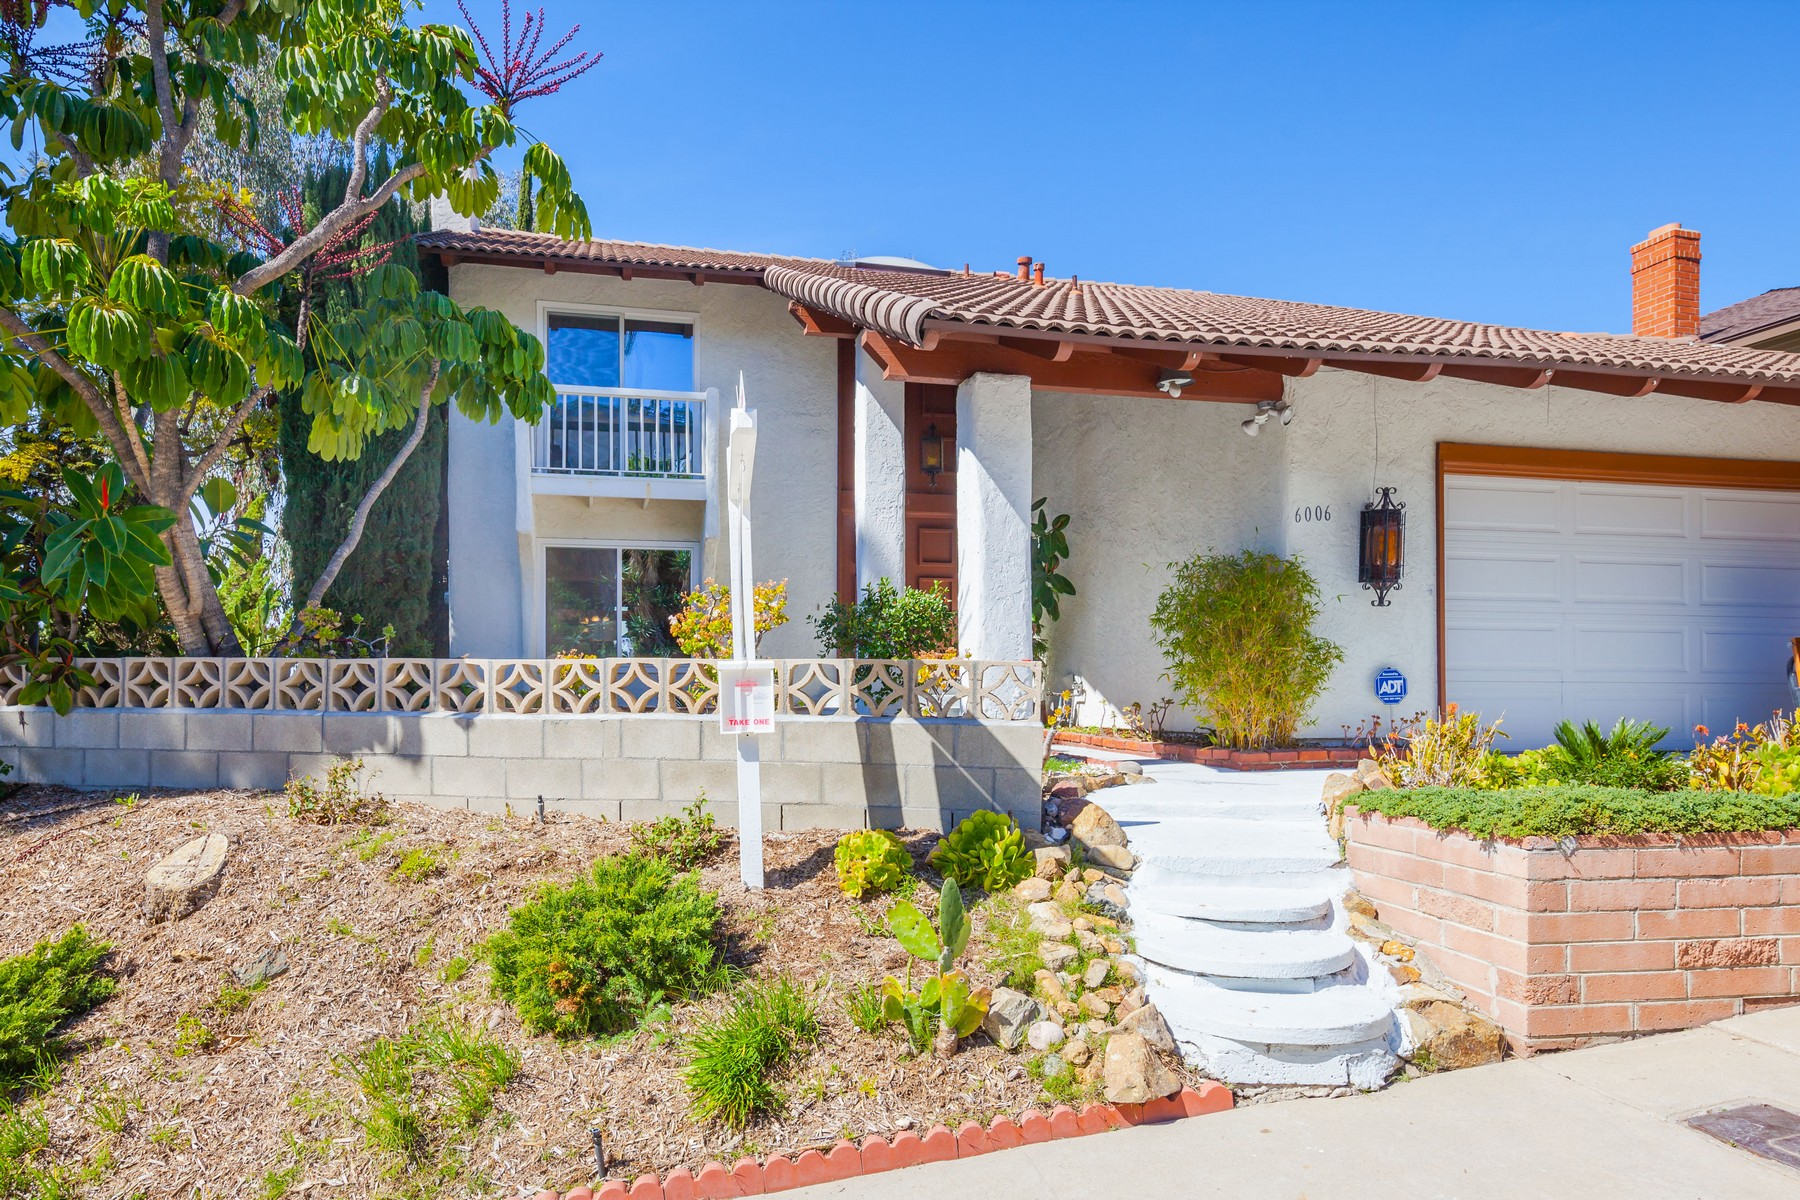 Single Family Home for Sale at 6006 Camino Largo San Diego, California 92120 United States